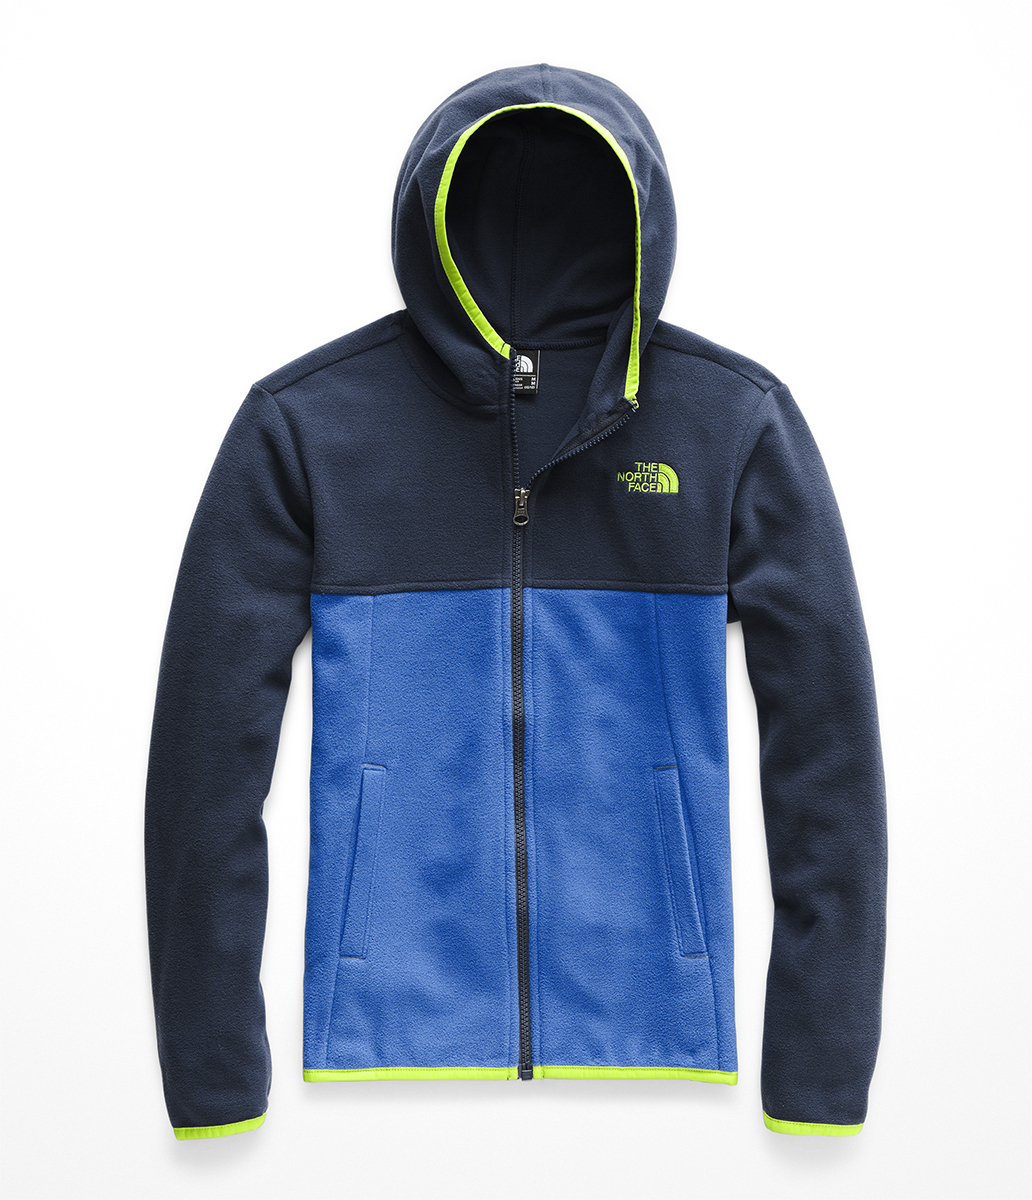 The North Face Boys' Glacier Full Zip Hoodie NF0A3NN8 S9